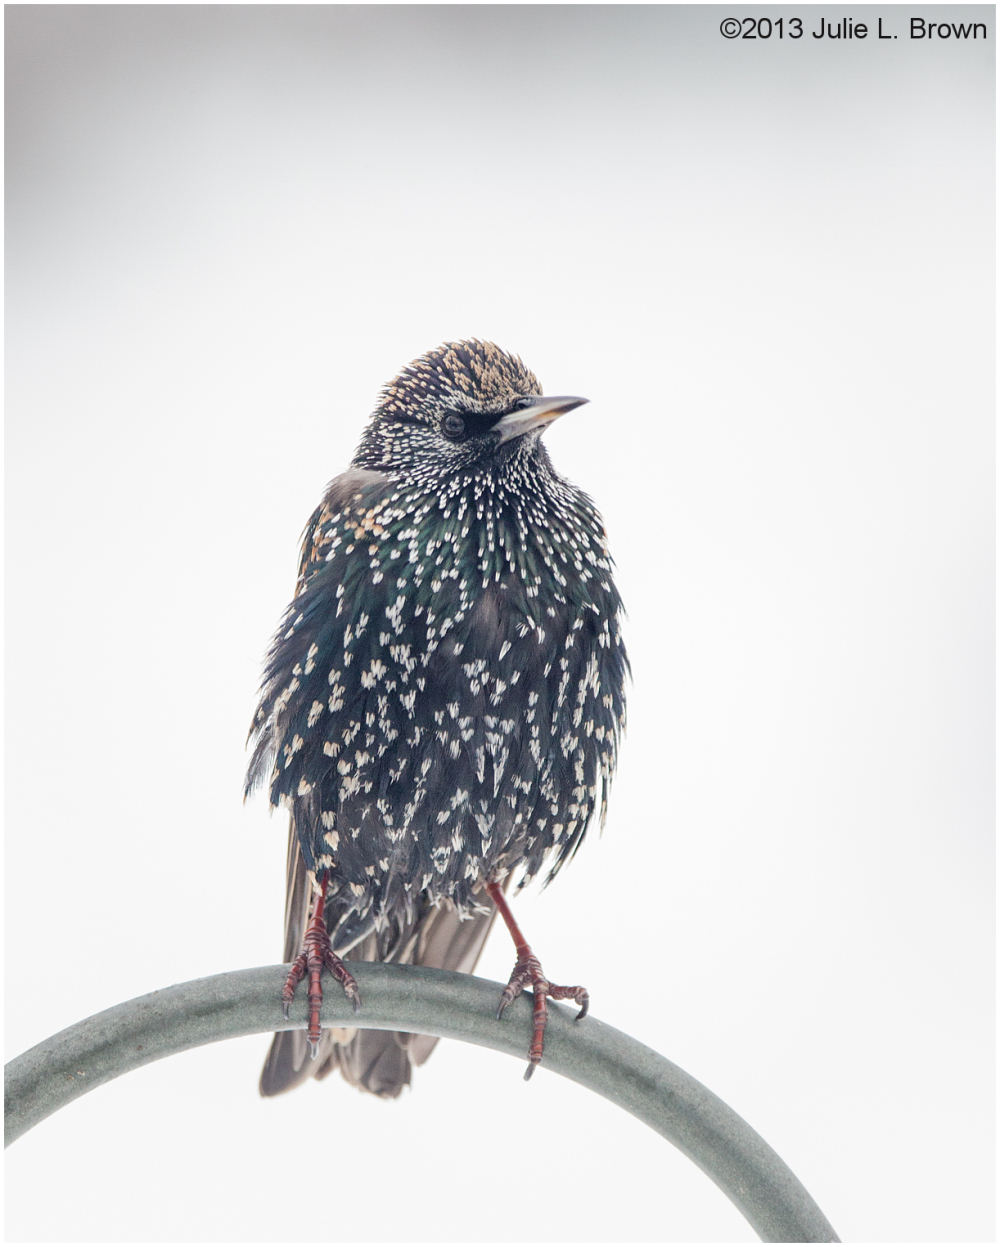 european starling at backyard feeder indianapolis